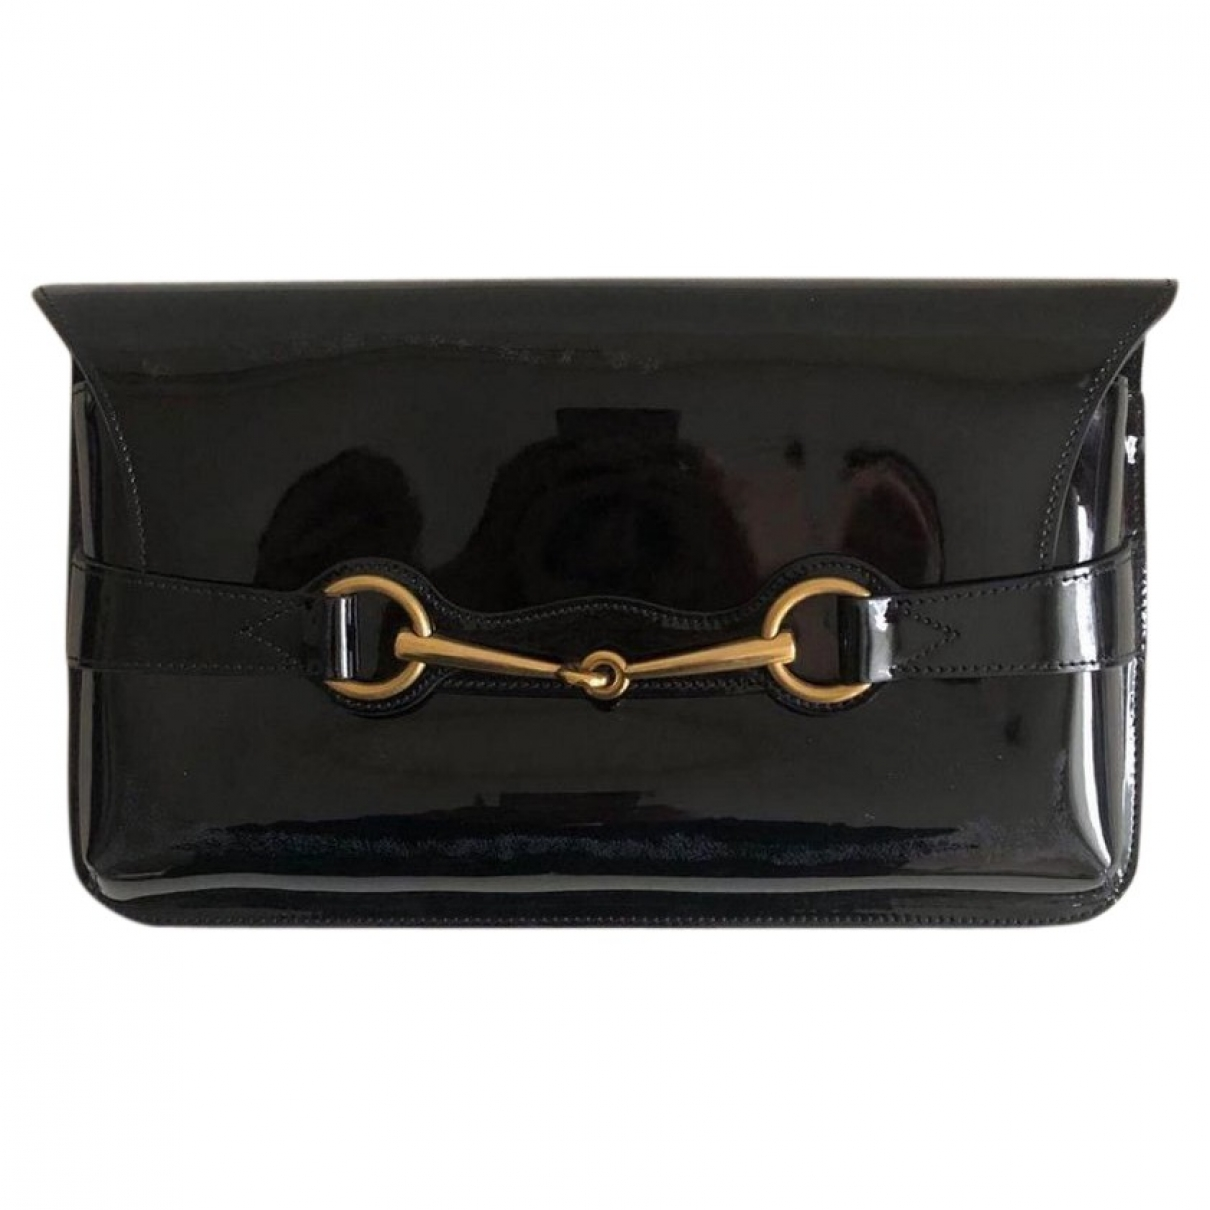 Gucci \N Black Patent leather Clutch bag for Women \N